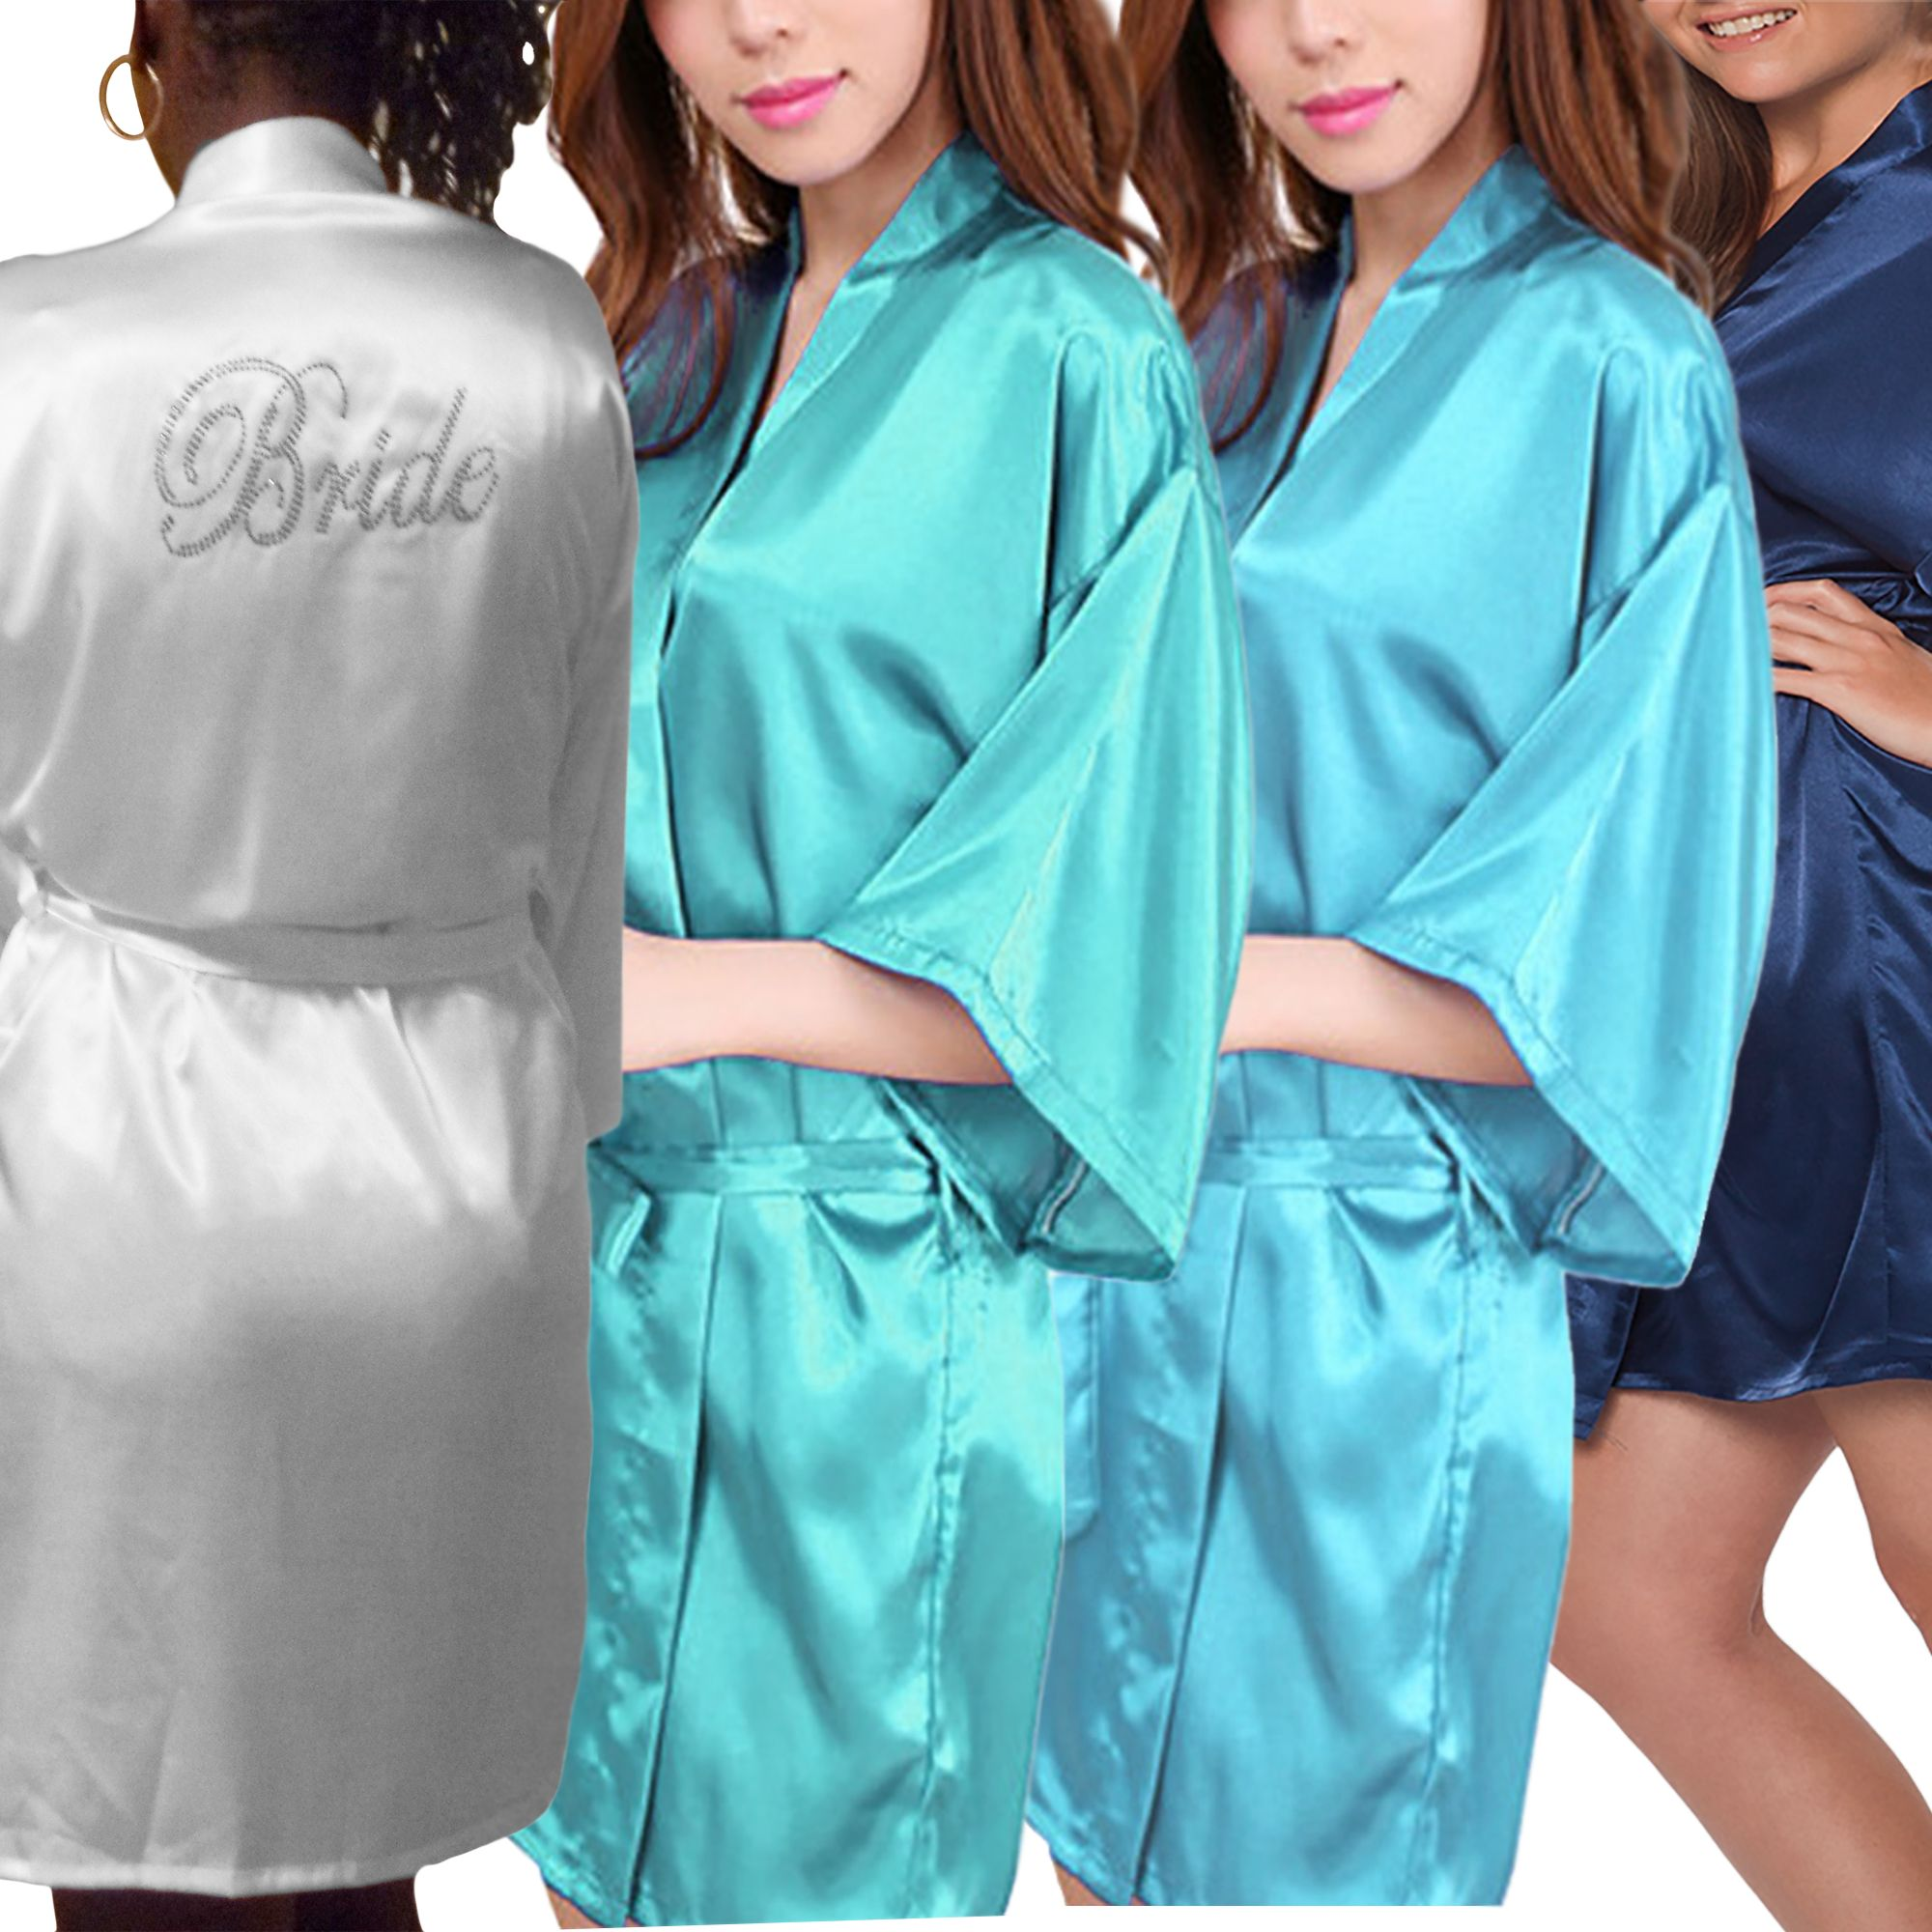 0cbe689865cd Solid Satin Wedding Robes for Brides and Bridesmaids for sizes 4 to 26.  Some robes